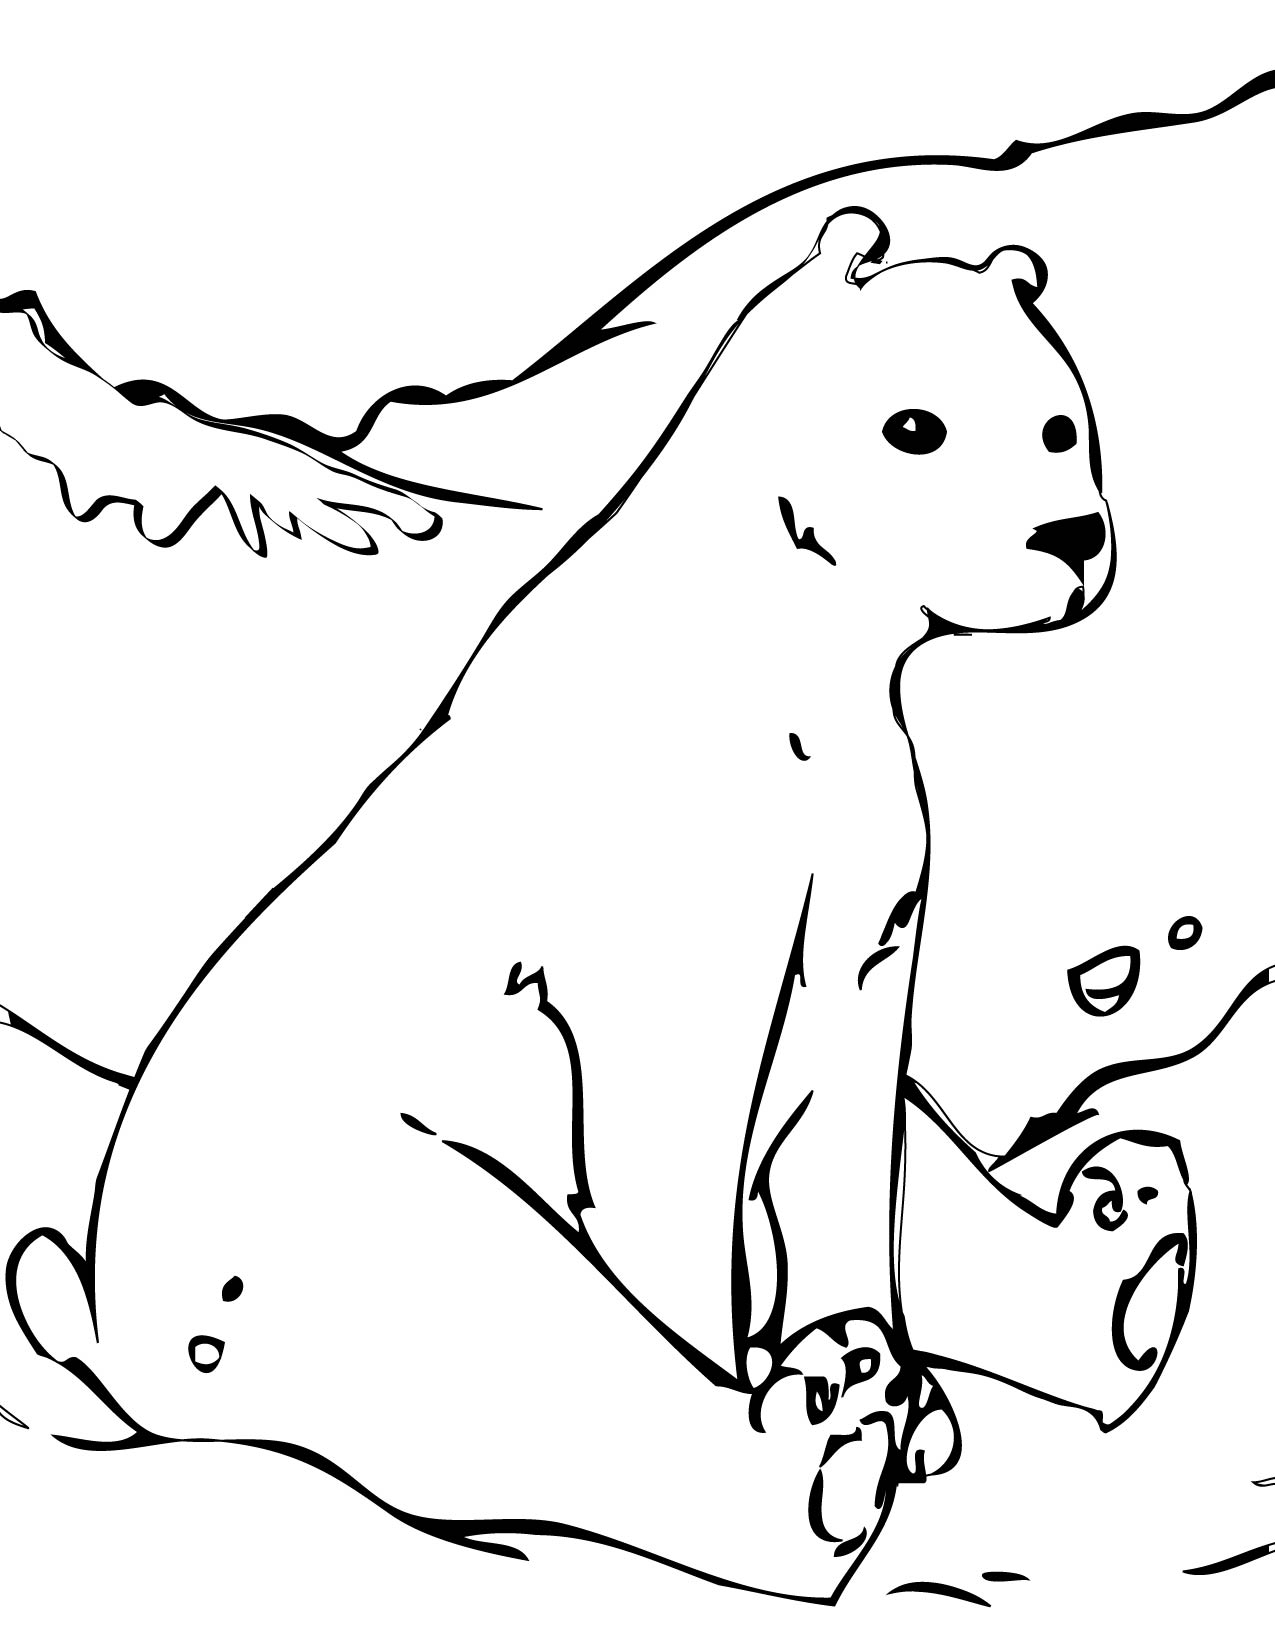 1275x1650 Polar Bear Coloring Page (Bit A Dog's Head, But The Shape